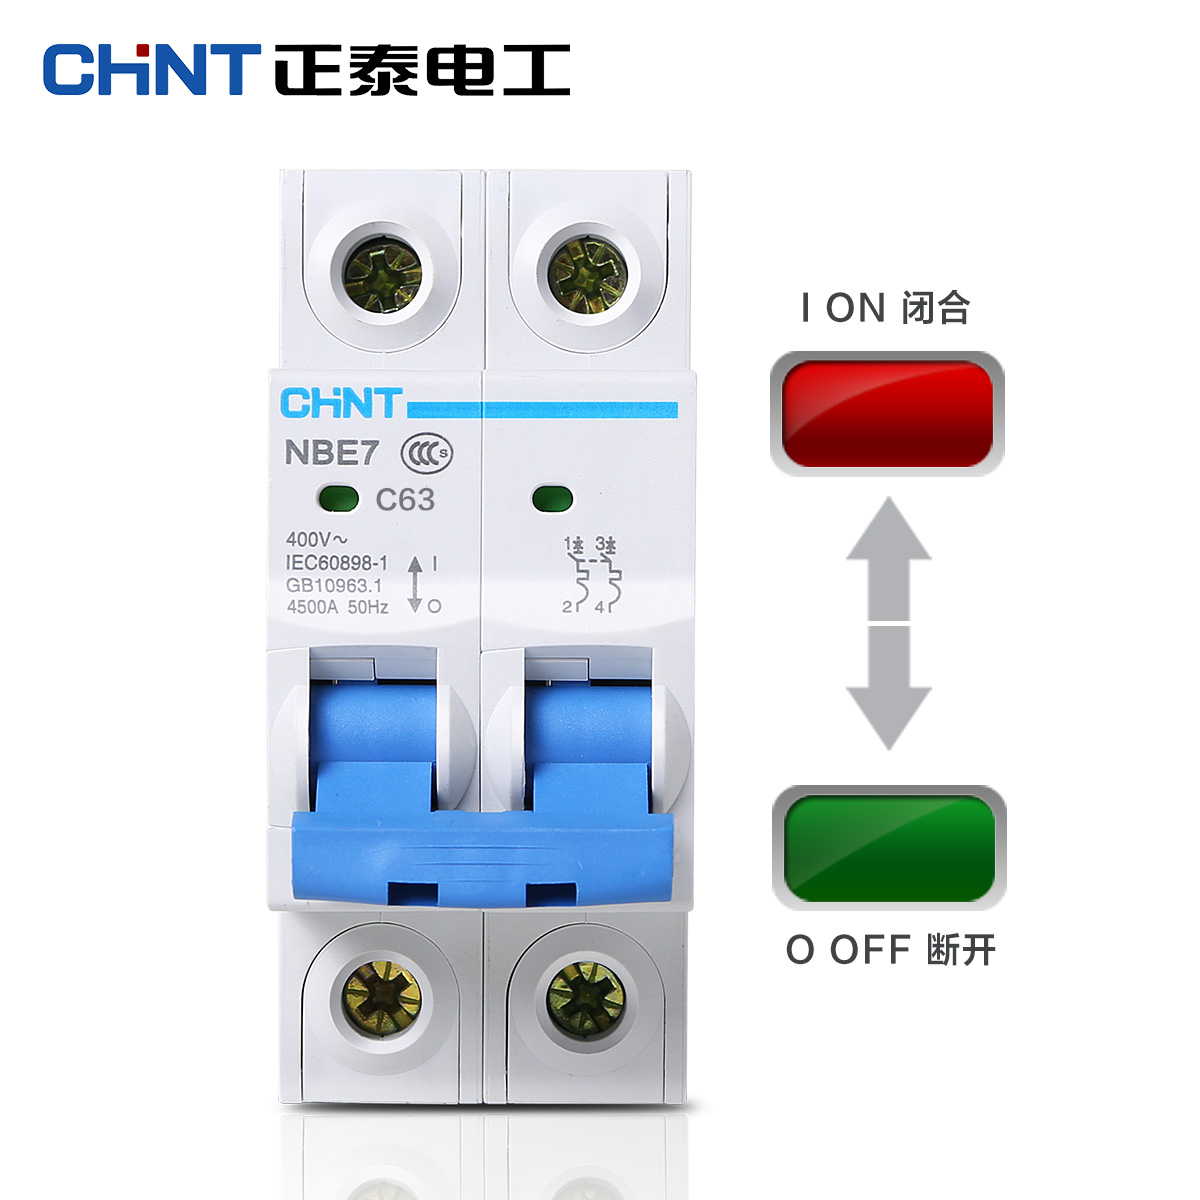 Chint Nbe7 Air Switch Miniature Circuit Breaker 1p2p3p4p Household 20a 400v Onoff Mcb With Cover Buy Electric Brake Dz47 Bipolar Open Upgrade